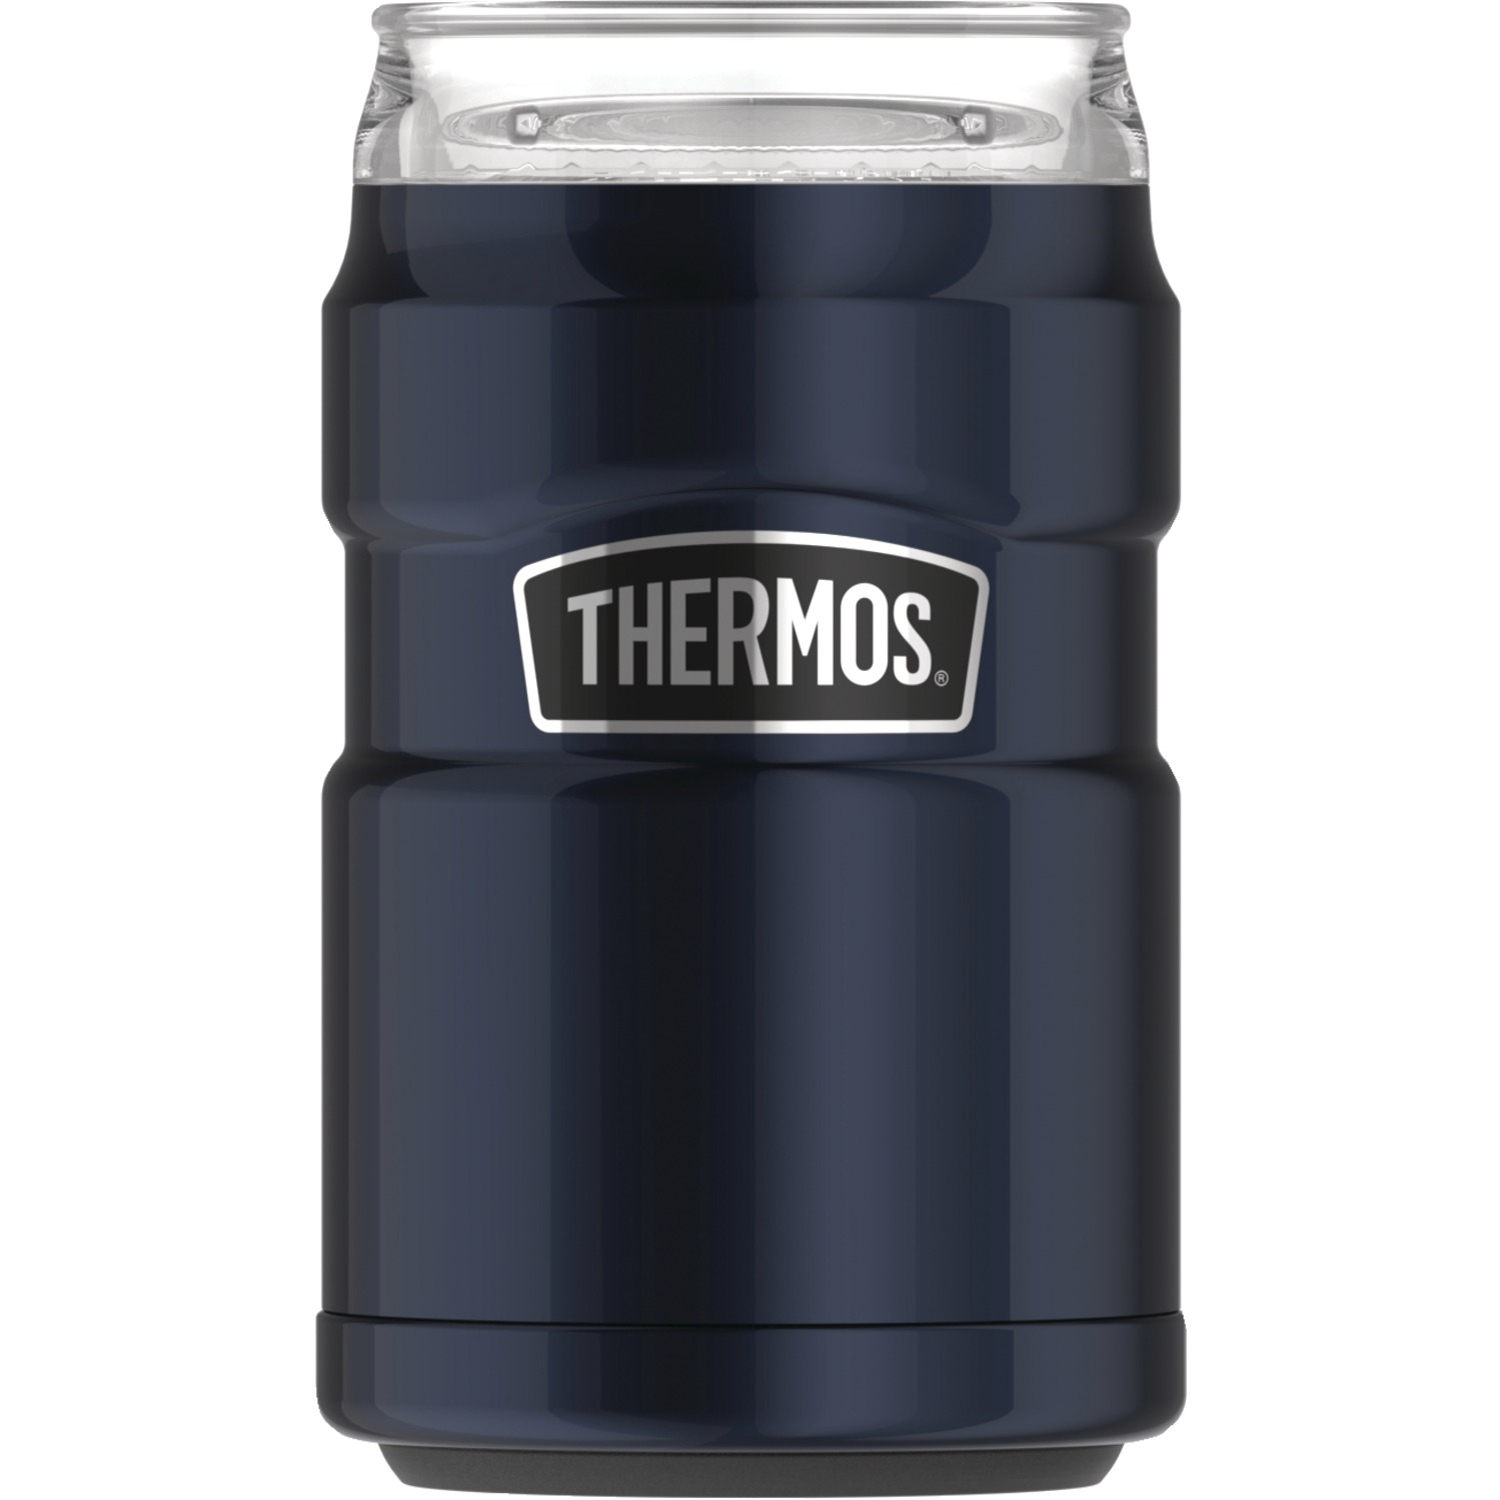 Thermos Sk1500mb4 10 ounce Stainless Steel Tumbler With 360deg Drink Lid midnight Blue